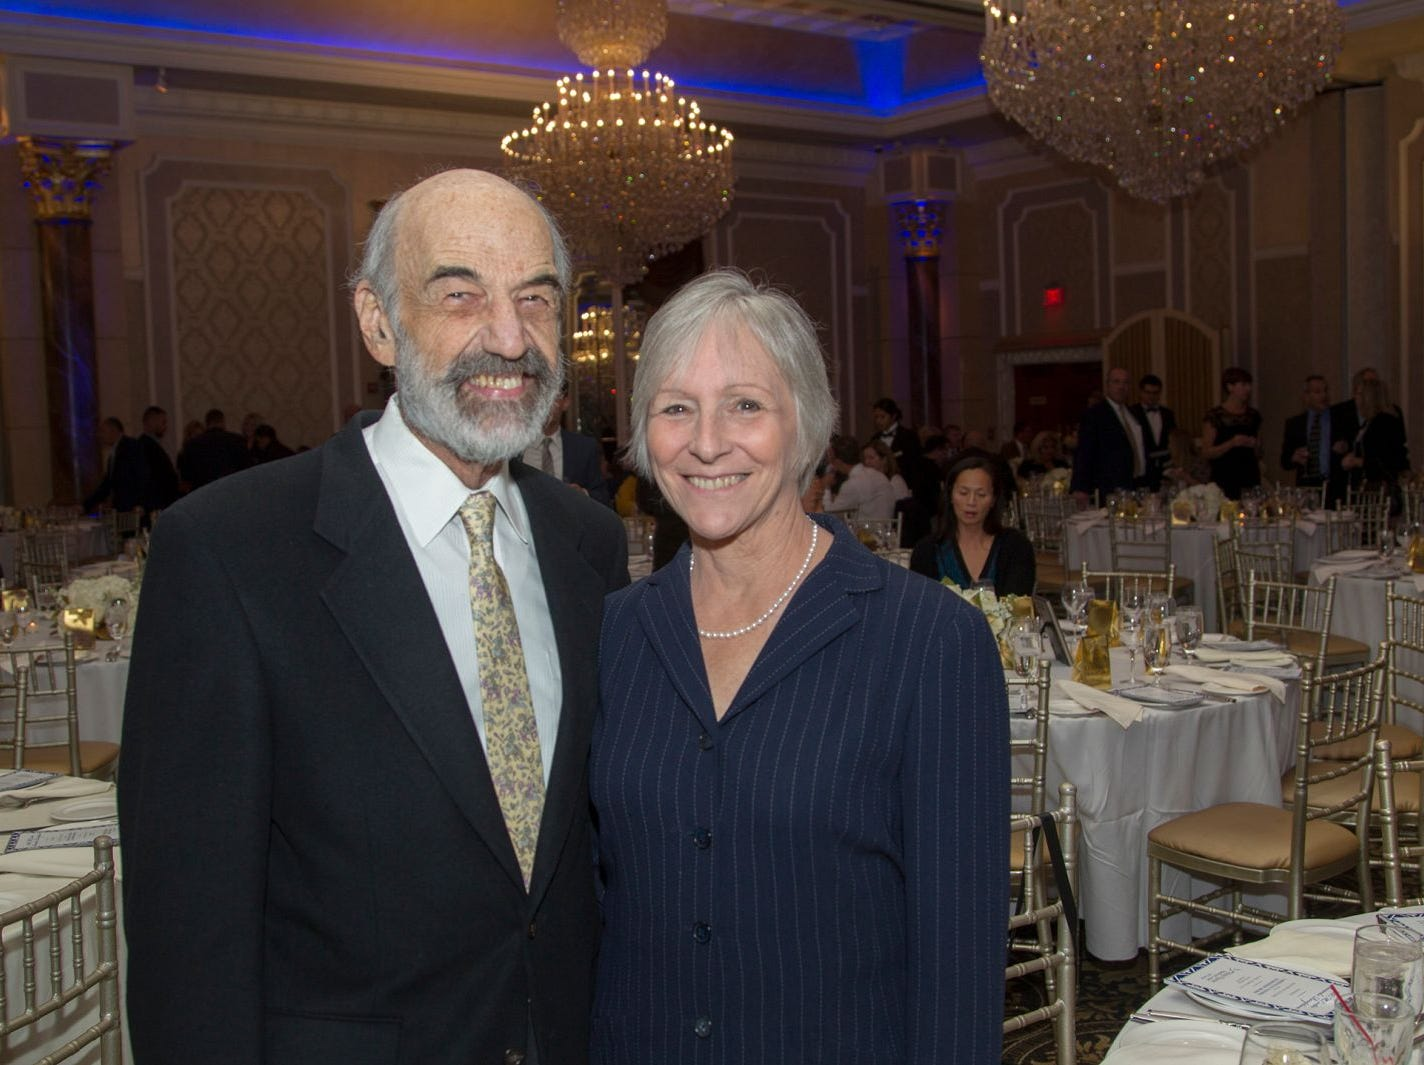 Dr. Joe Frascino and Kathy Frascino. Holy Name Medical Center held its 2018 MS Center Awards Reception at the Venetian in Garfield. 10/23/2018